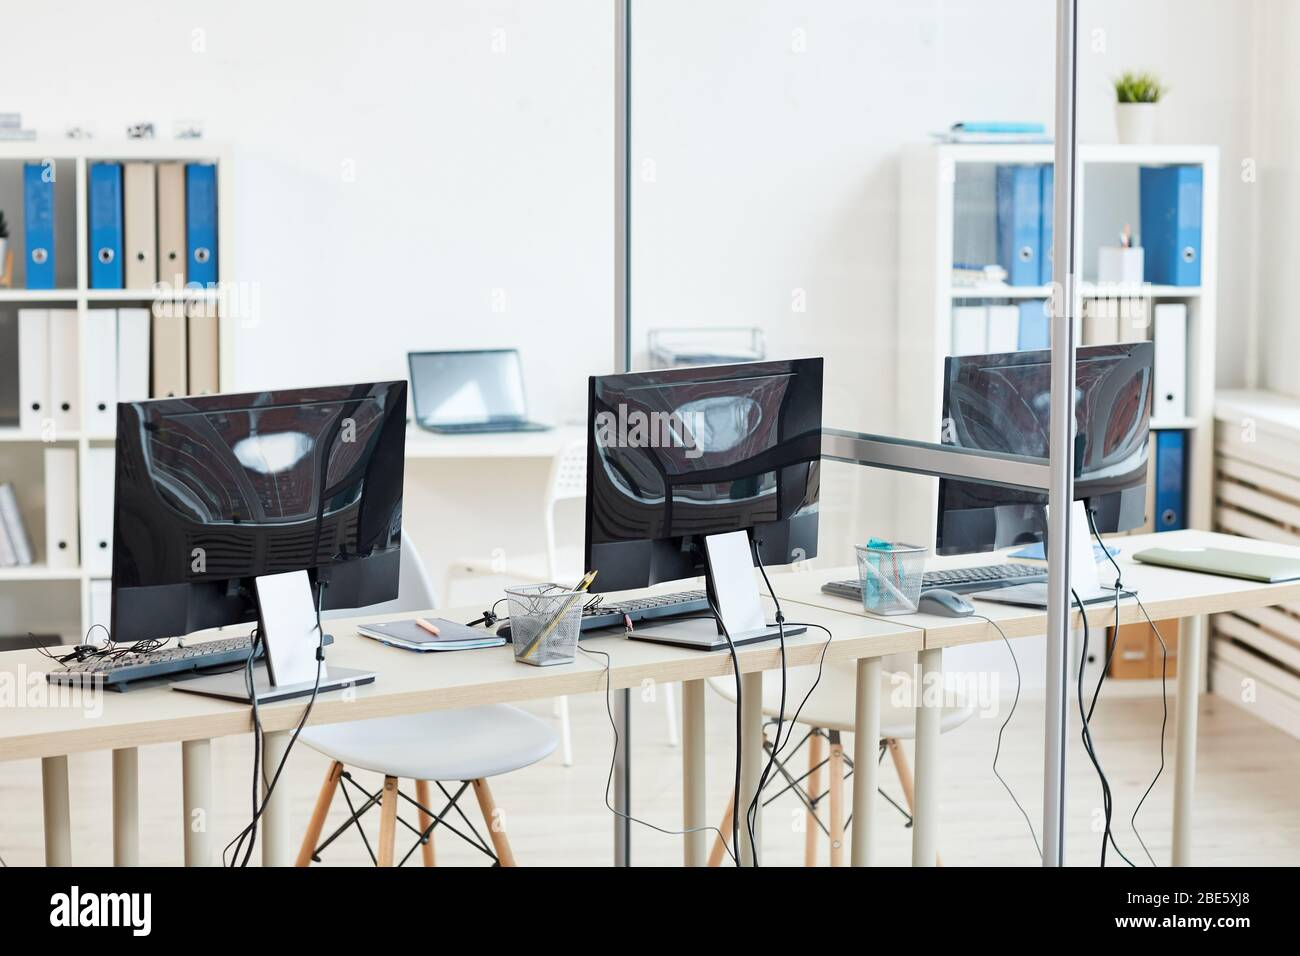 Background Image Of Empty Office Interior With Three Computer Desks In Row Copy Space Stock Photo Alamy